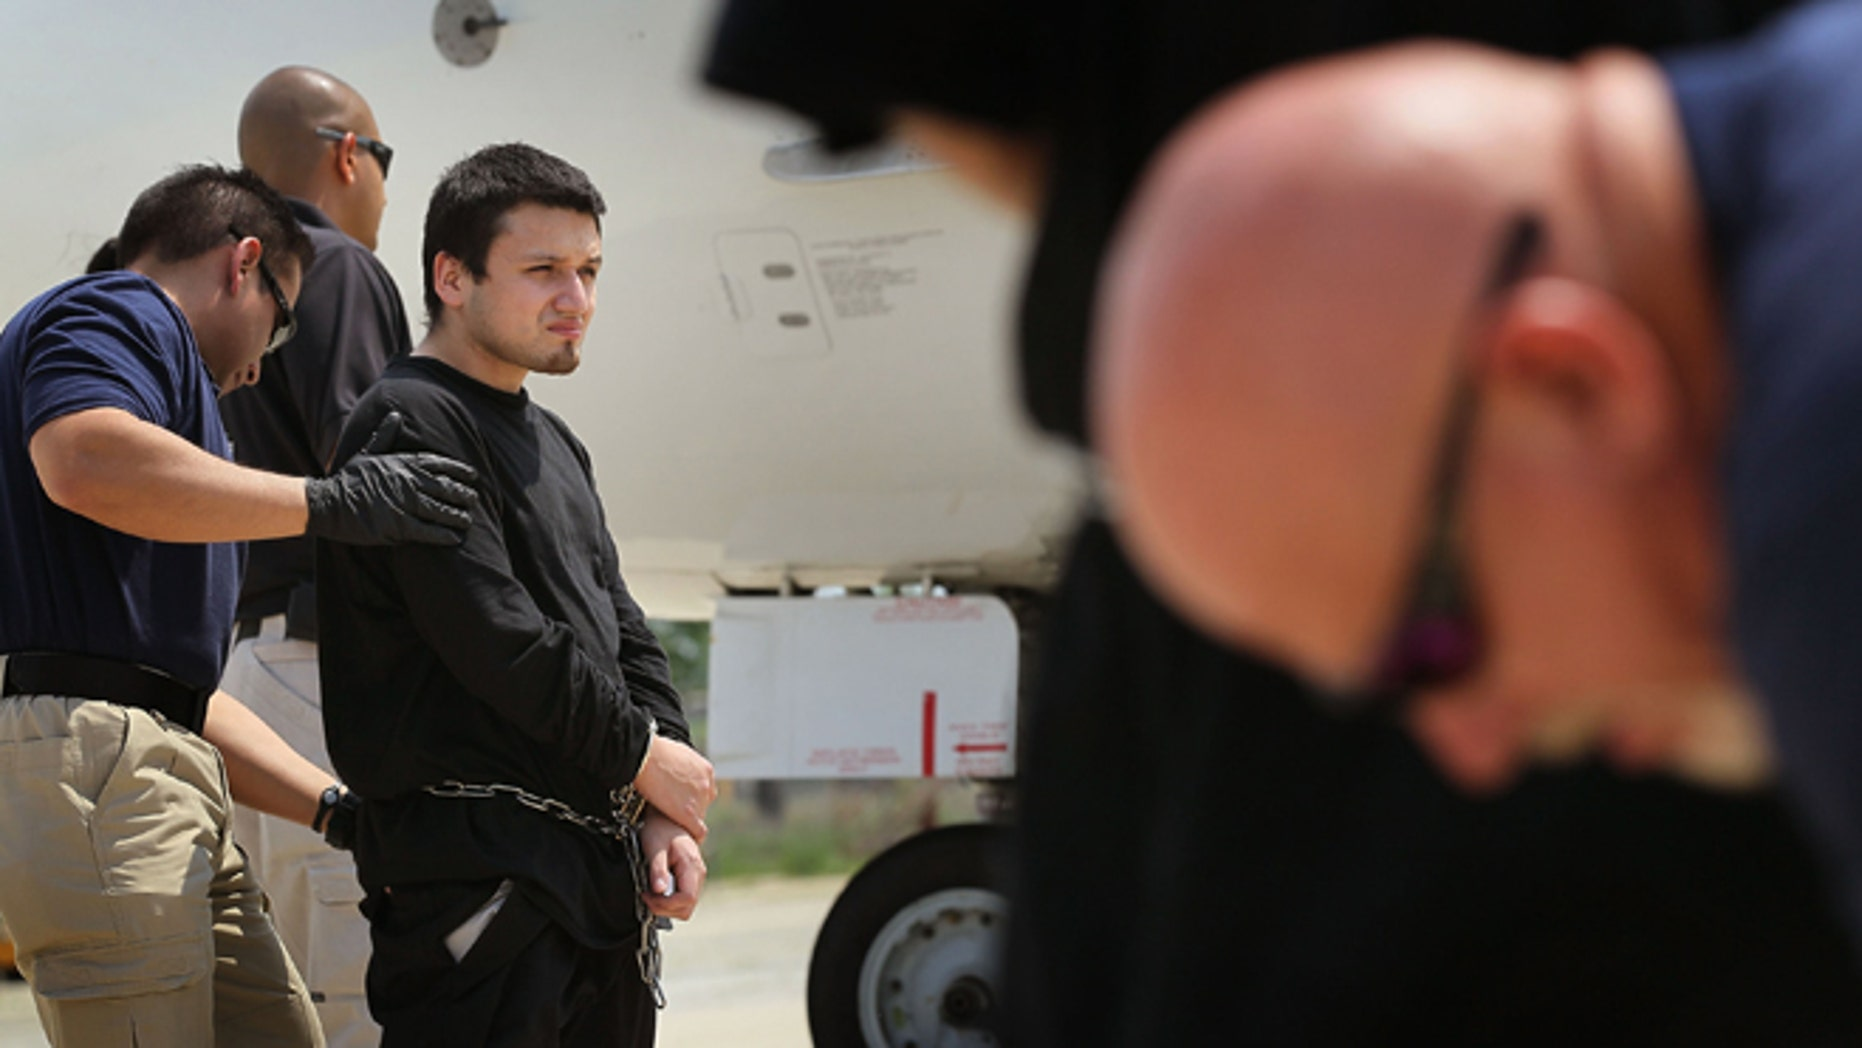 CHICAGO - MAY 25:  Ulises Hernandez is searched while being transferred from a van to a jet chartered by U.S. Immigration and Customs Enforcement (ICE) on May 25, 2010 in Chicago, Illinois. Hernandez and the other passengers on the deportation flight began the morning at an ICE processing center in suburban Chicago before boarding the flight to Harlingen, Texas where they were then bussed to Brownsville and finally walked to the Mexican border and released from custody. The U.S. deports over 350,000 immigrants a year for entering the country illegally, most are Mexican, and more than 90 percent are men.  (Photo by Scott Olson/Getty Images)